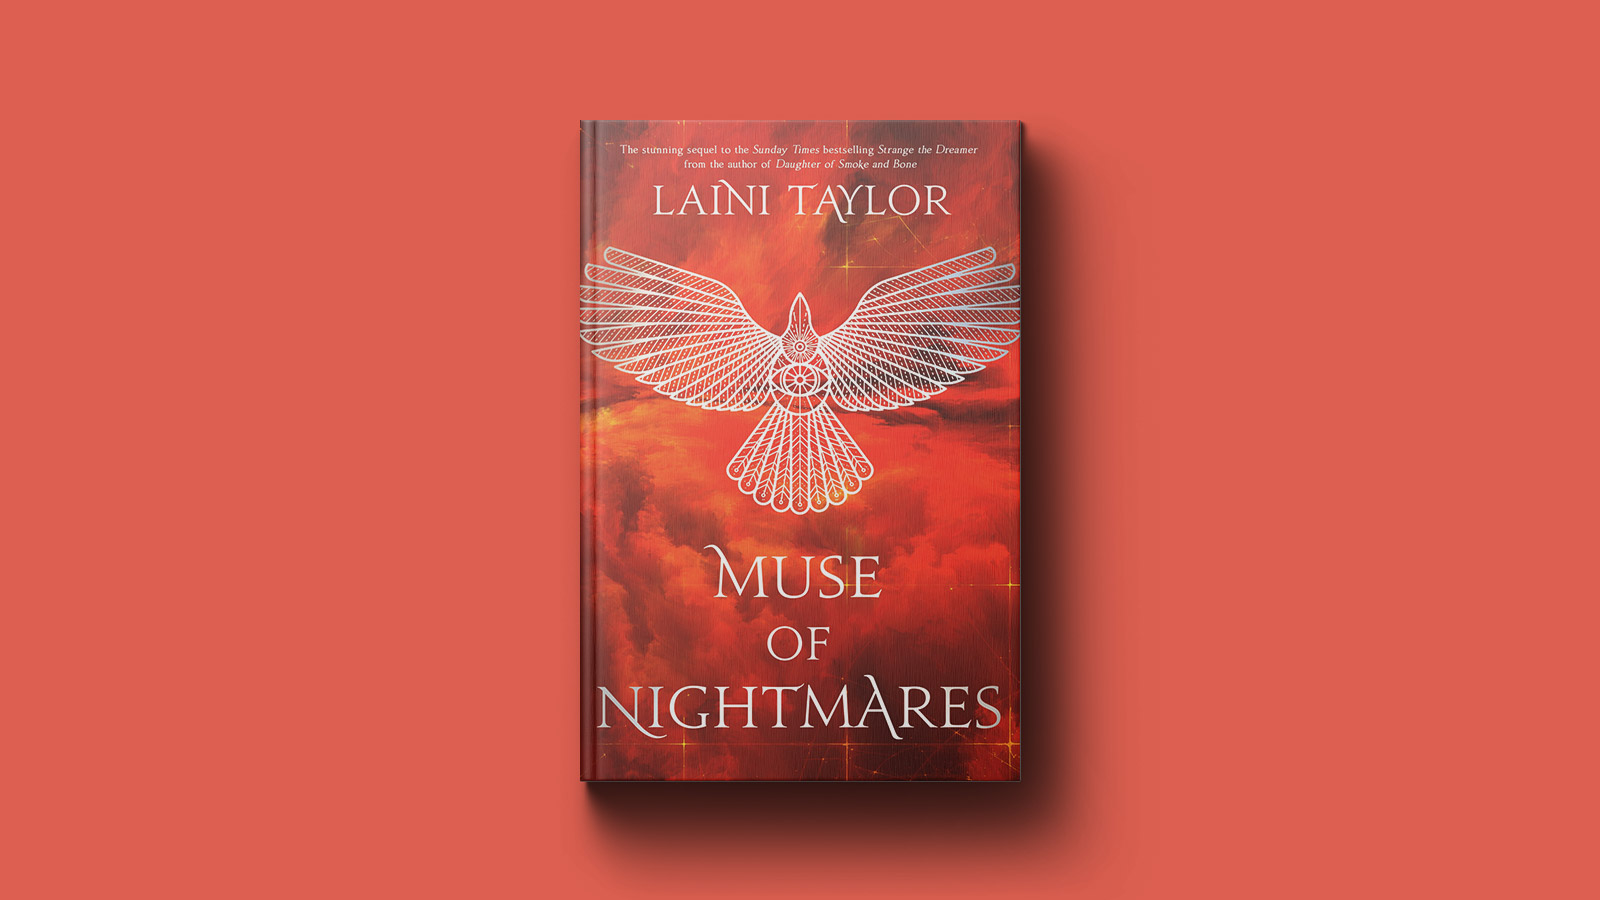 Muse of Nightmares cover illustration by Haelsum